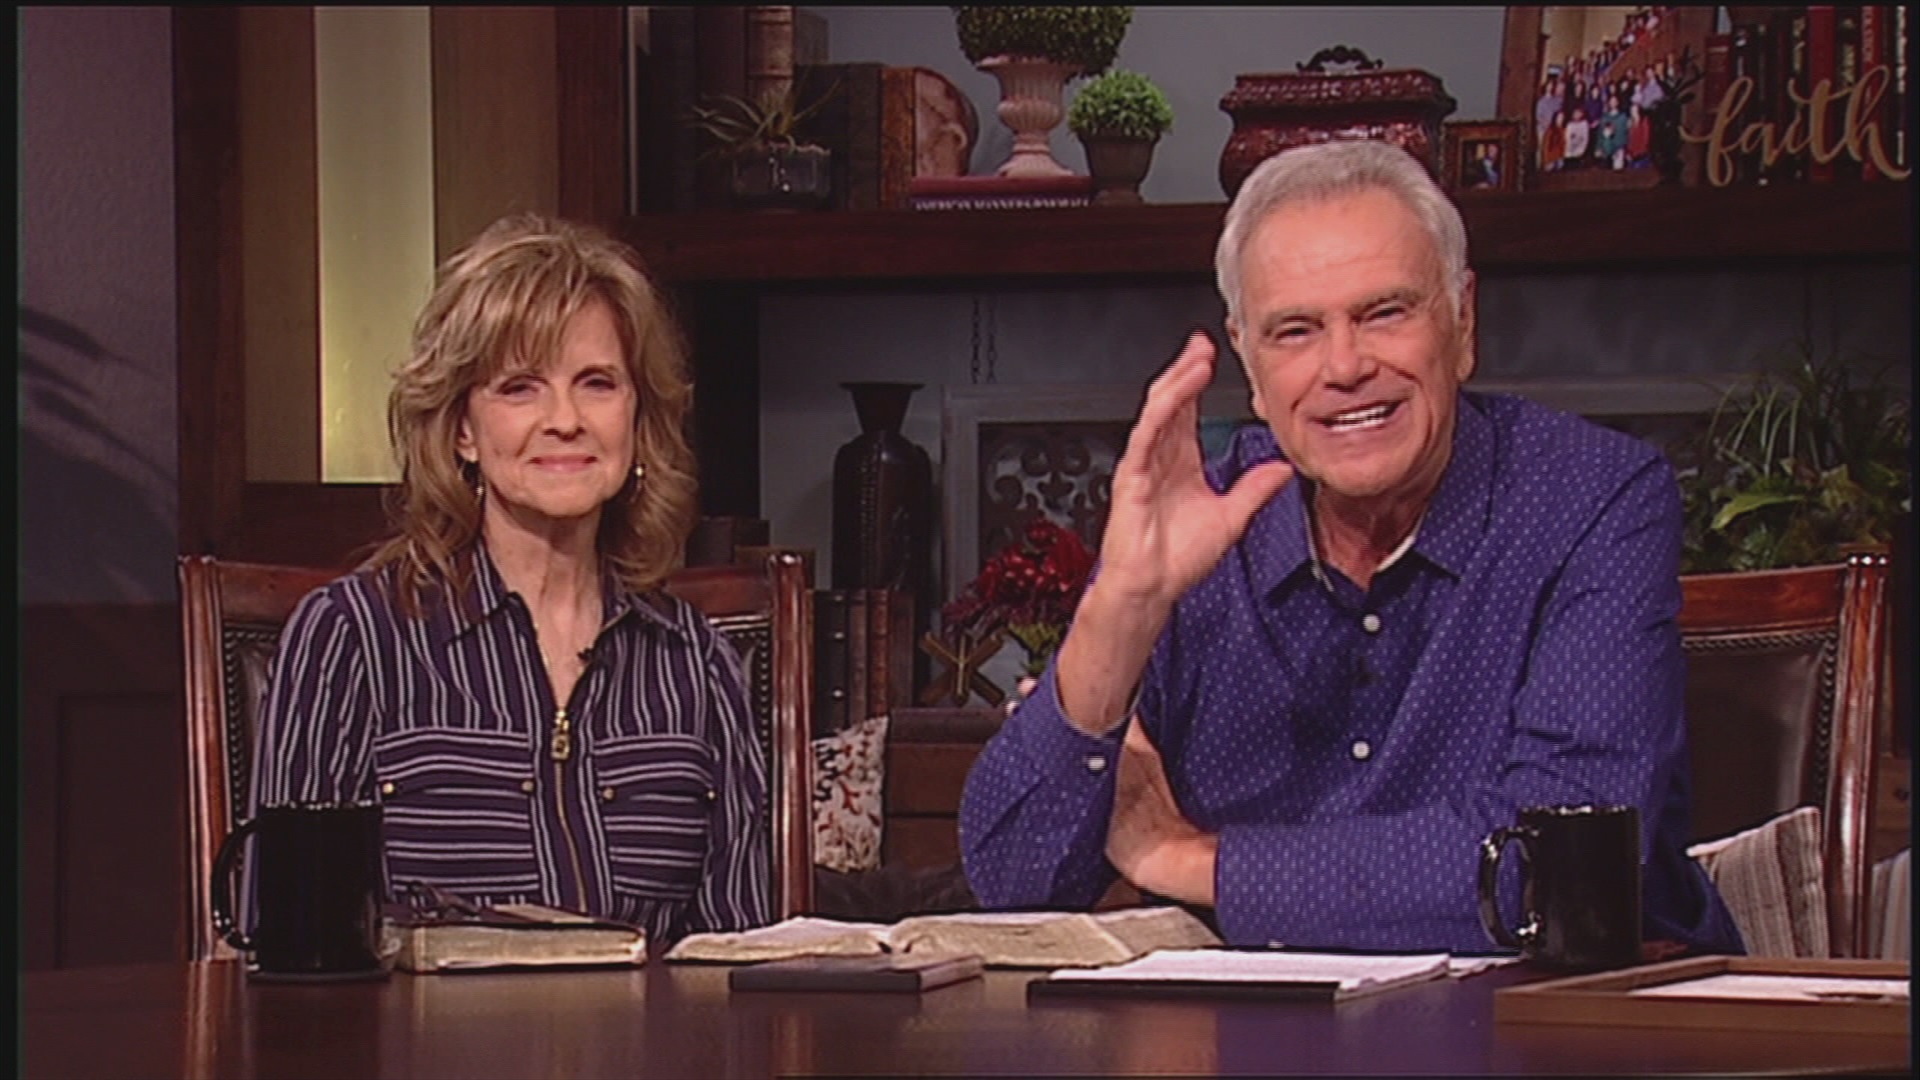 James and Betty Robison - Relying On God's Word